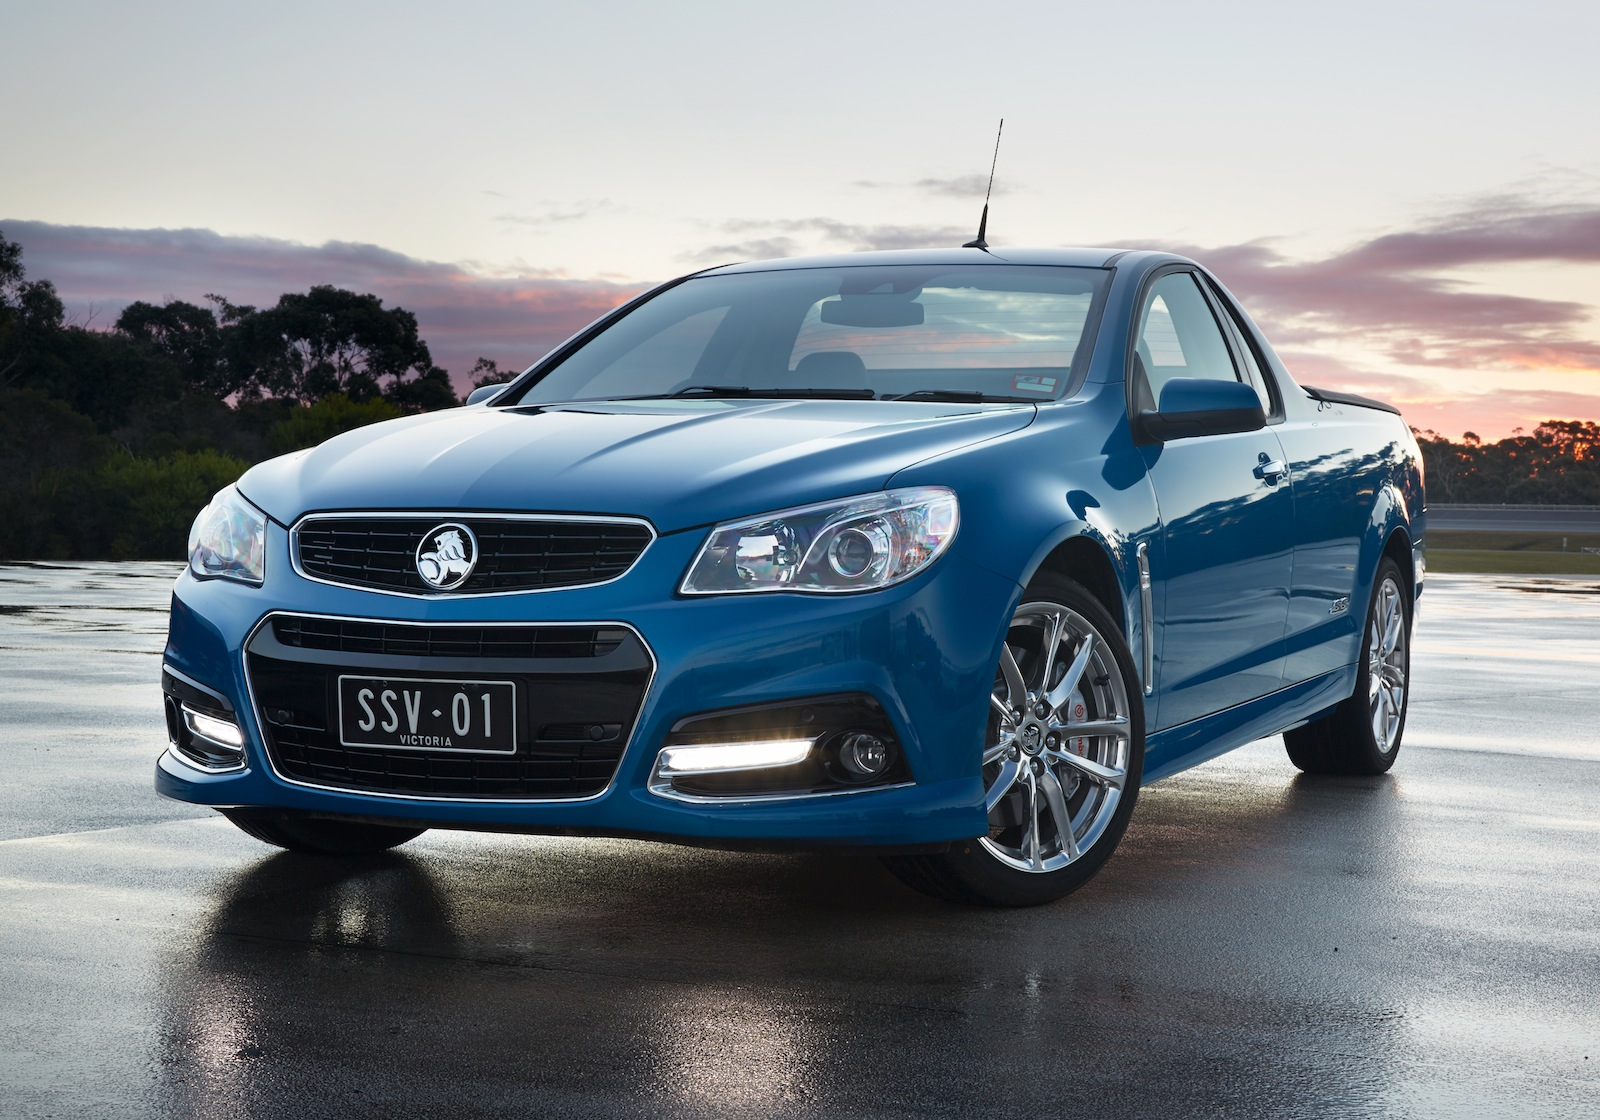 2014 Holden Vf Commodore Ute Ssv Redline Machinespider Com